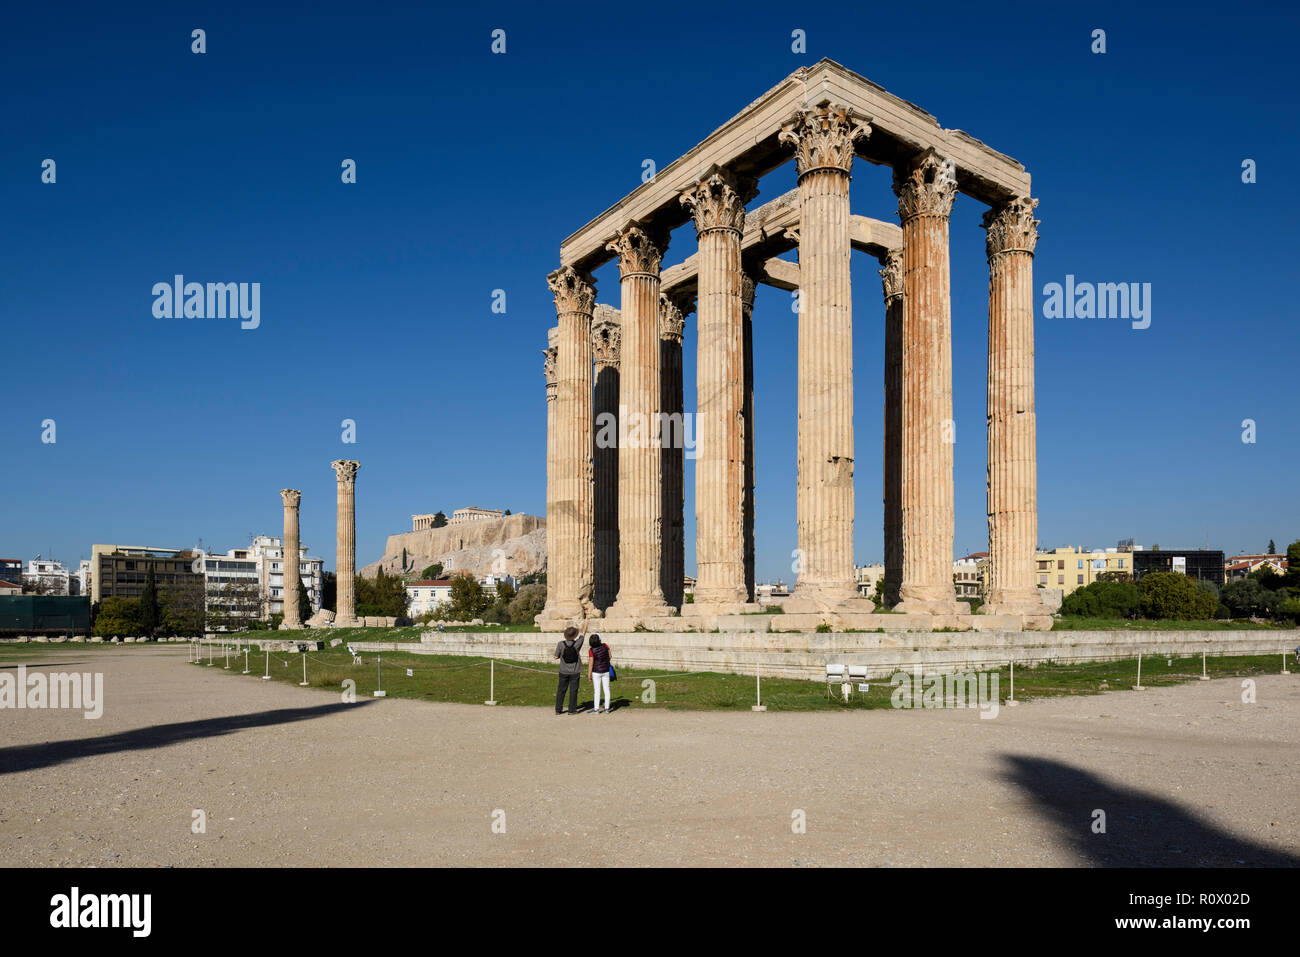 Athens. Greece. The Temple of Olympian Zeus (Olympieion) and the Acropolis in the background. - Stock Image